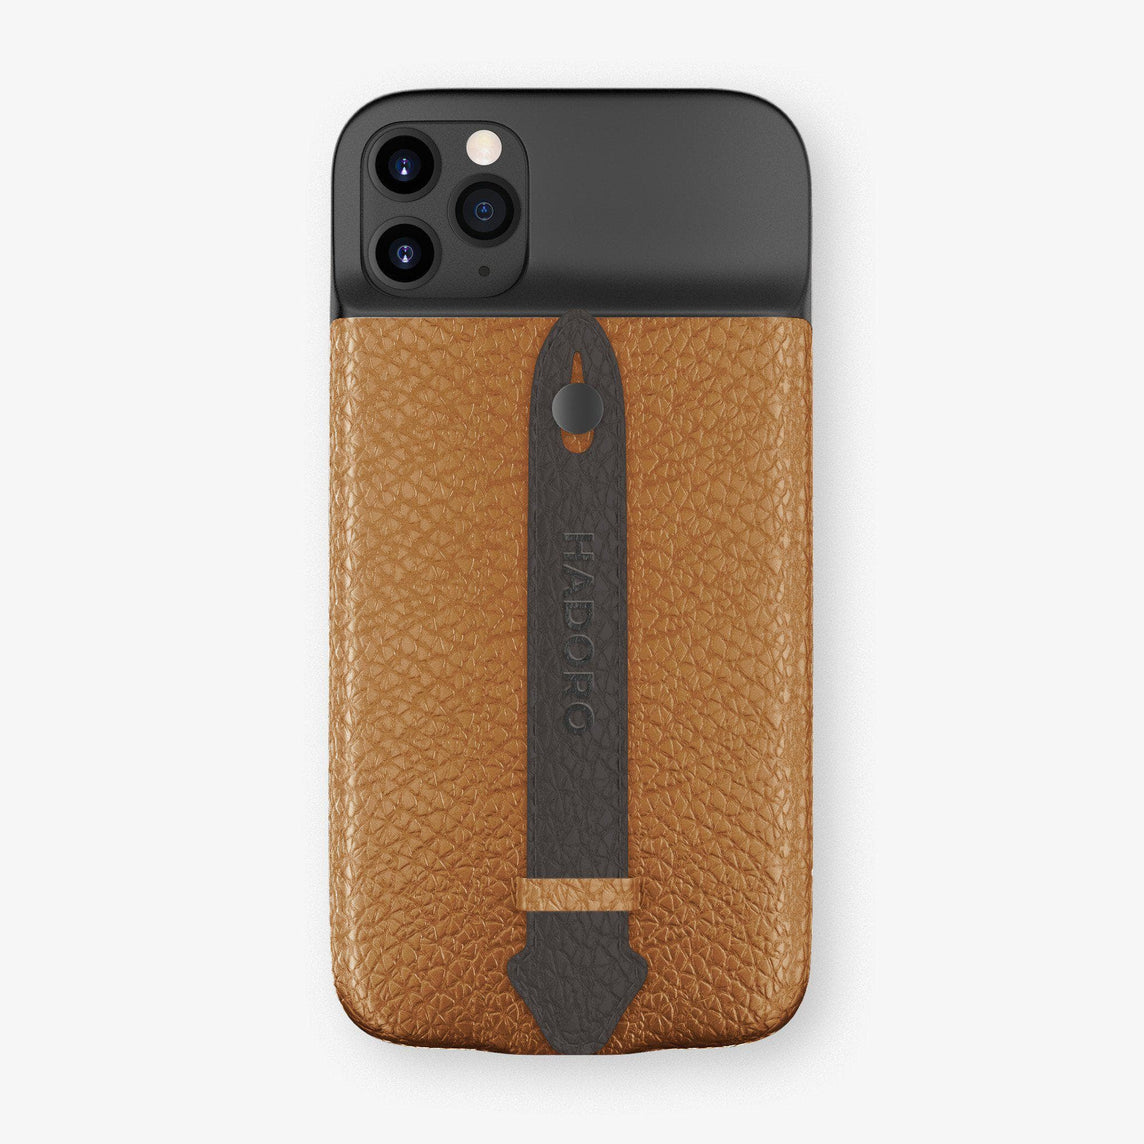 Calfskin Battery Finger Case for iPhone 11 Pro Max | Cognac/Anthracite - Black without-personalization